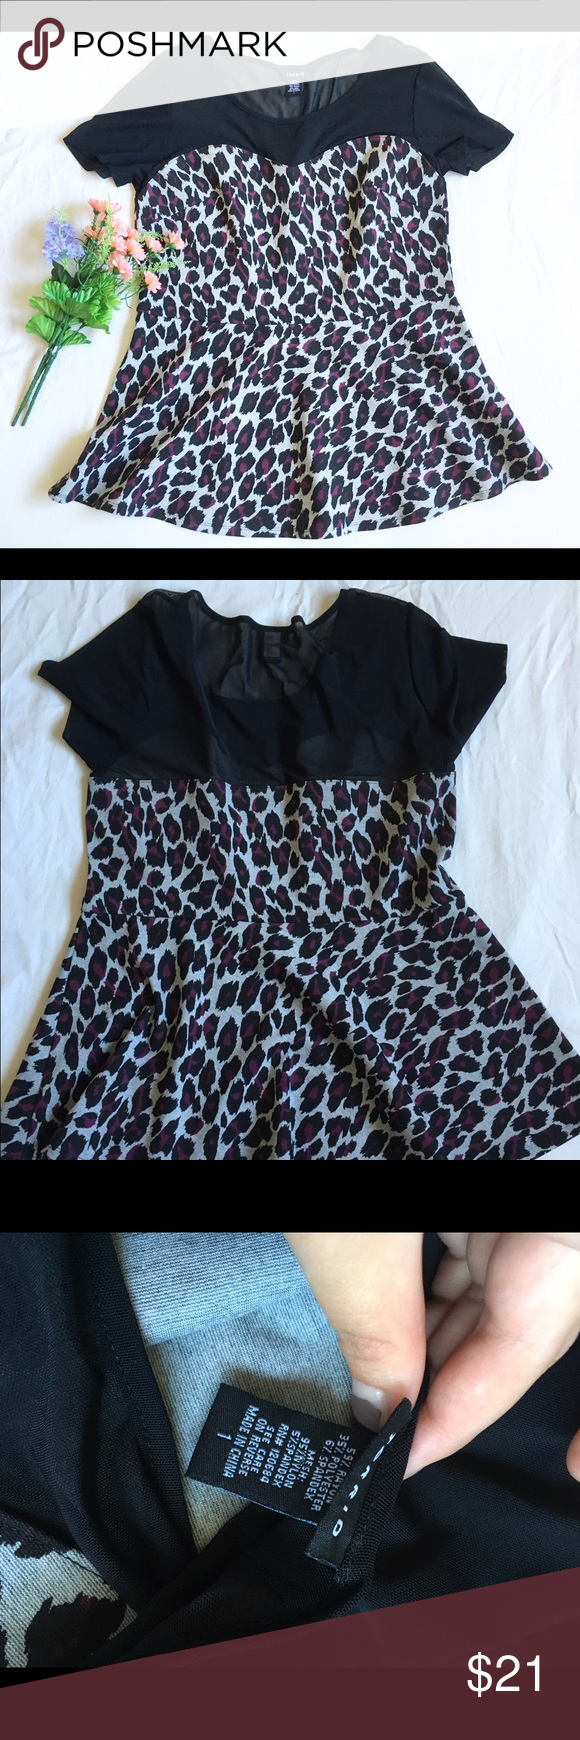 Torrid1 leopard peplum top Torrid1 leopard peplum top. Pull over peplum top with heart shape bust and mesh collar. torrid Tops